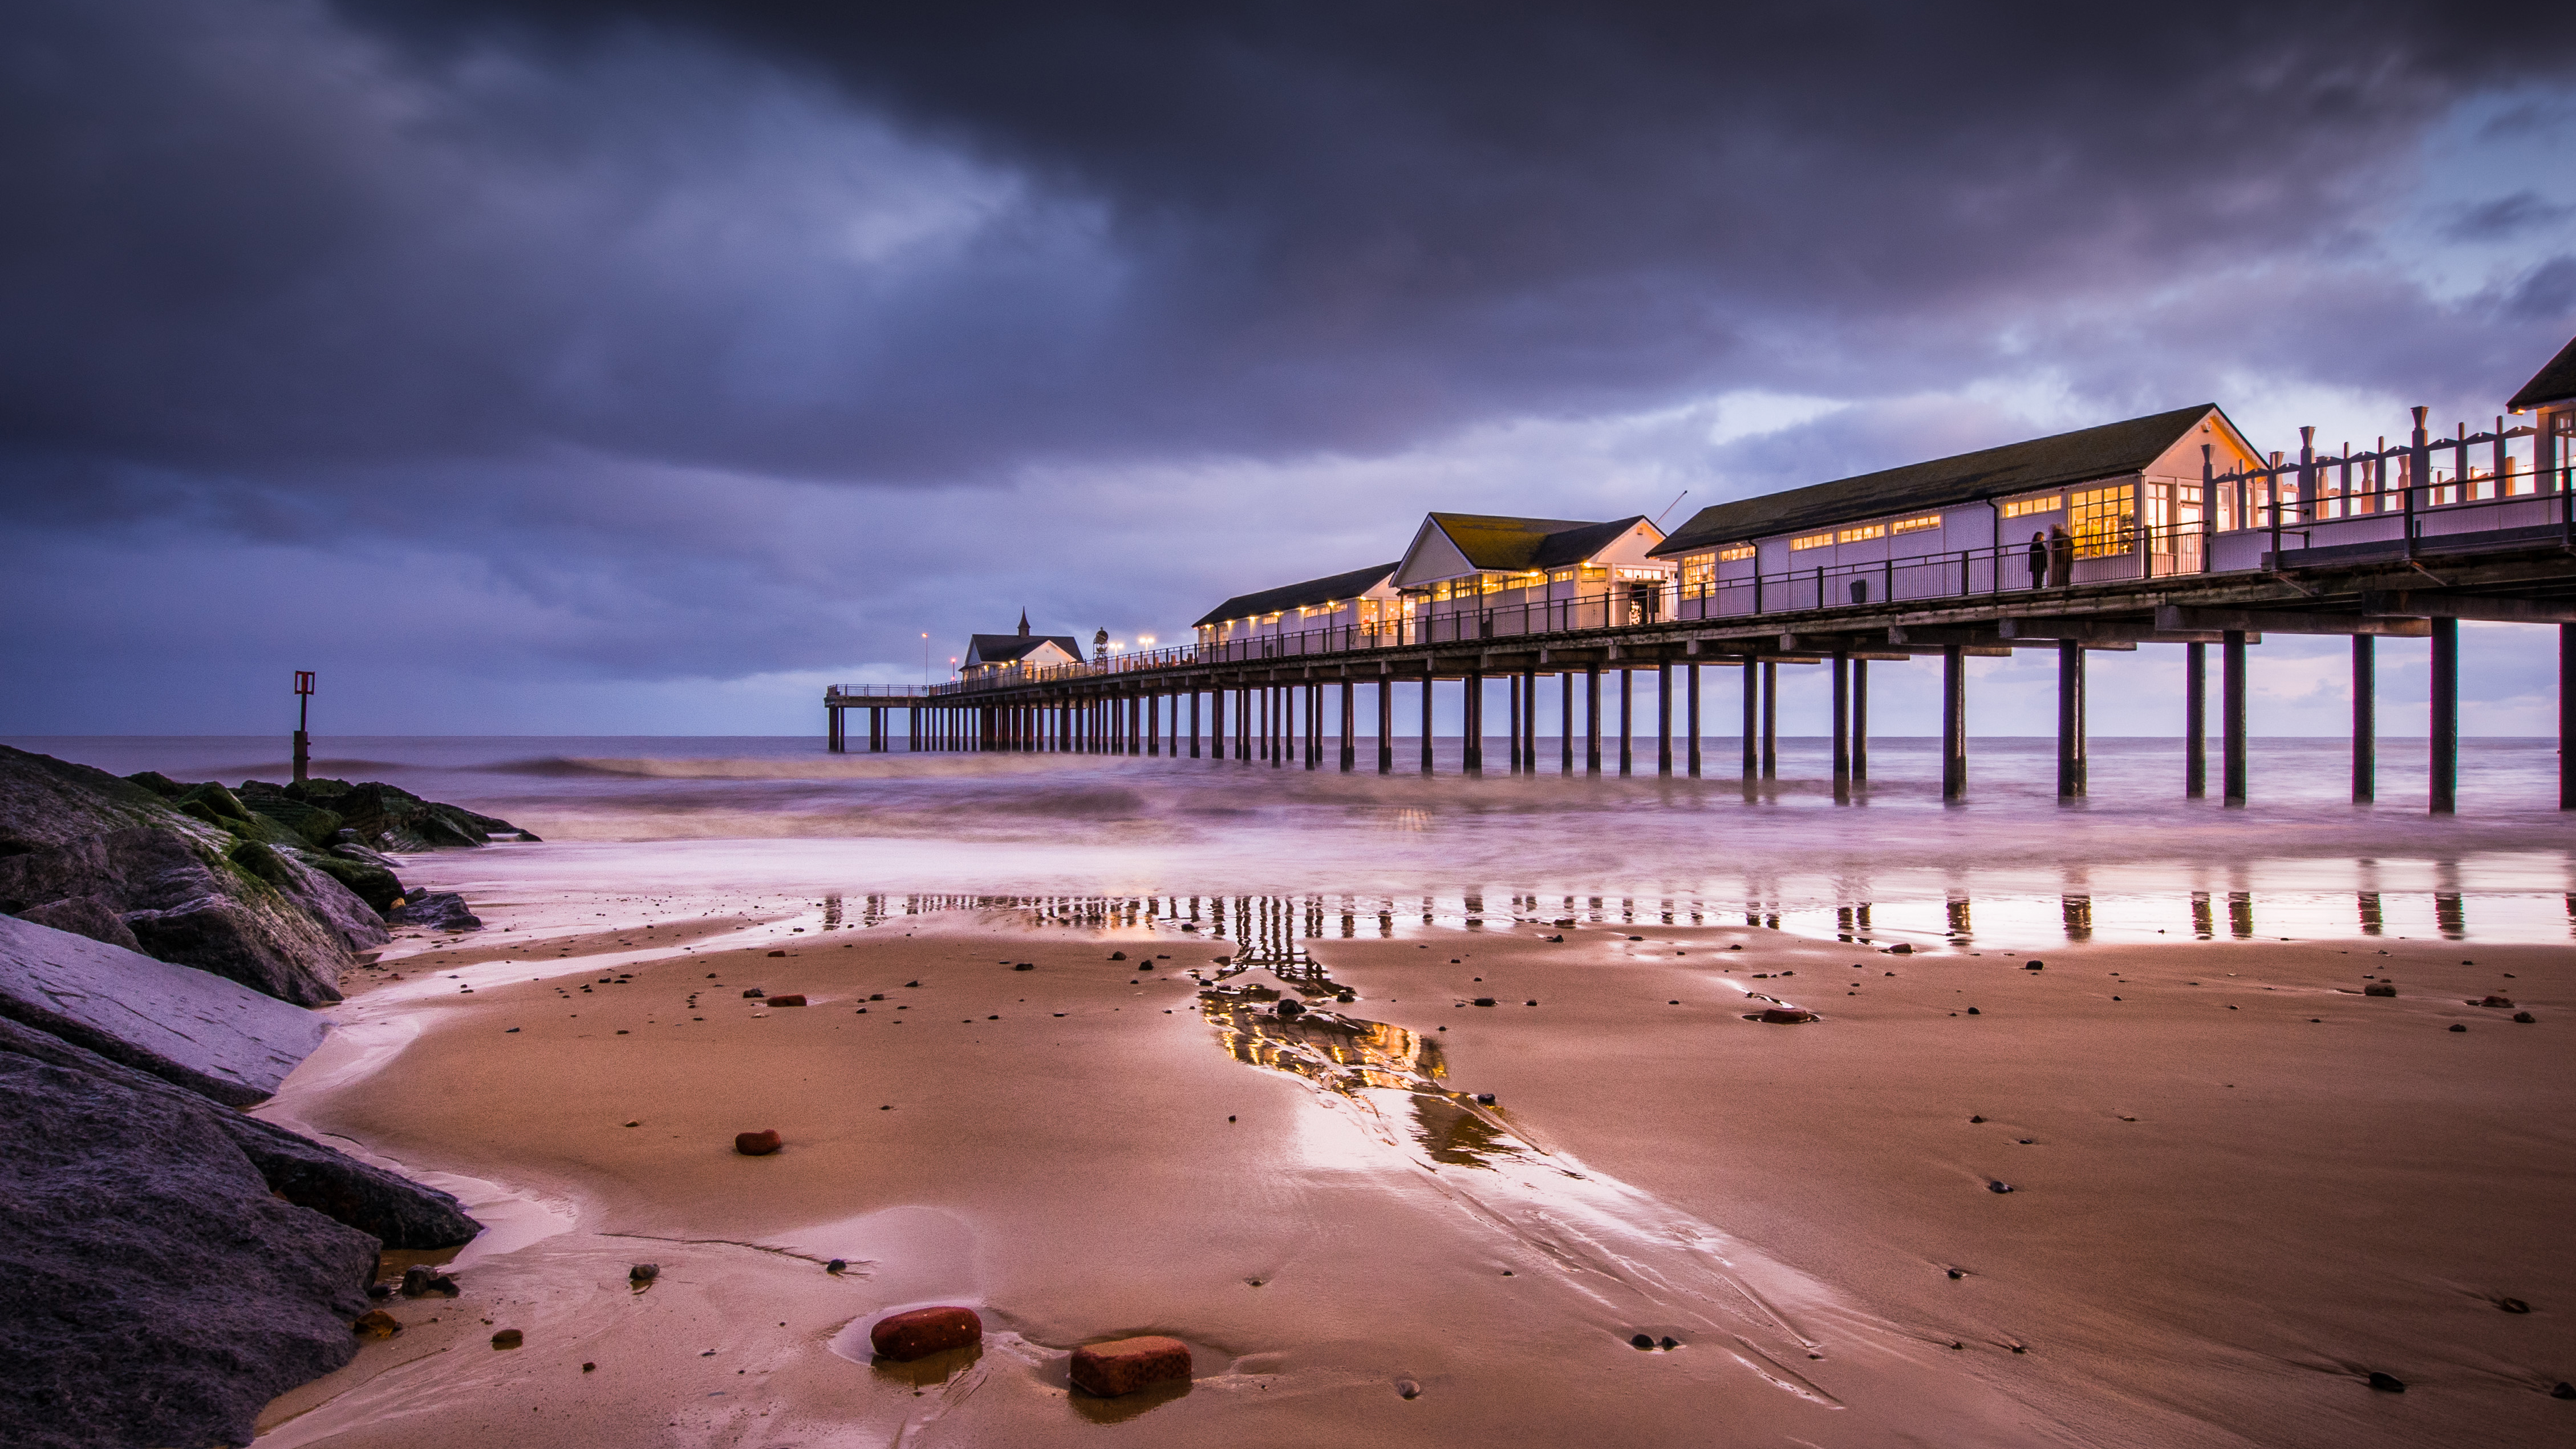 The 10 Laws Of Landscape Photography Techradar